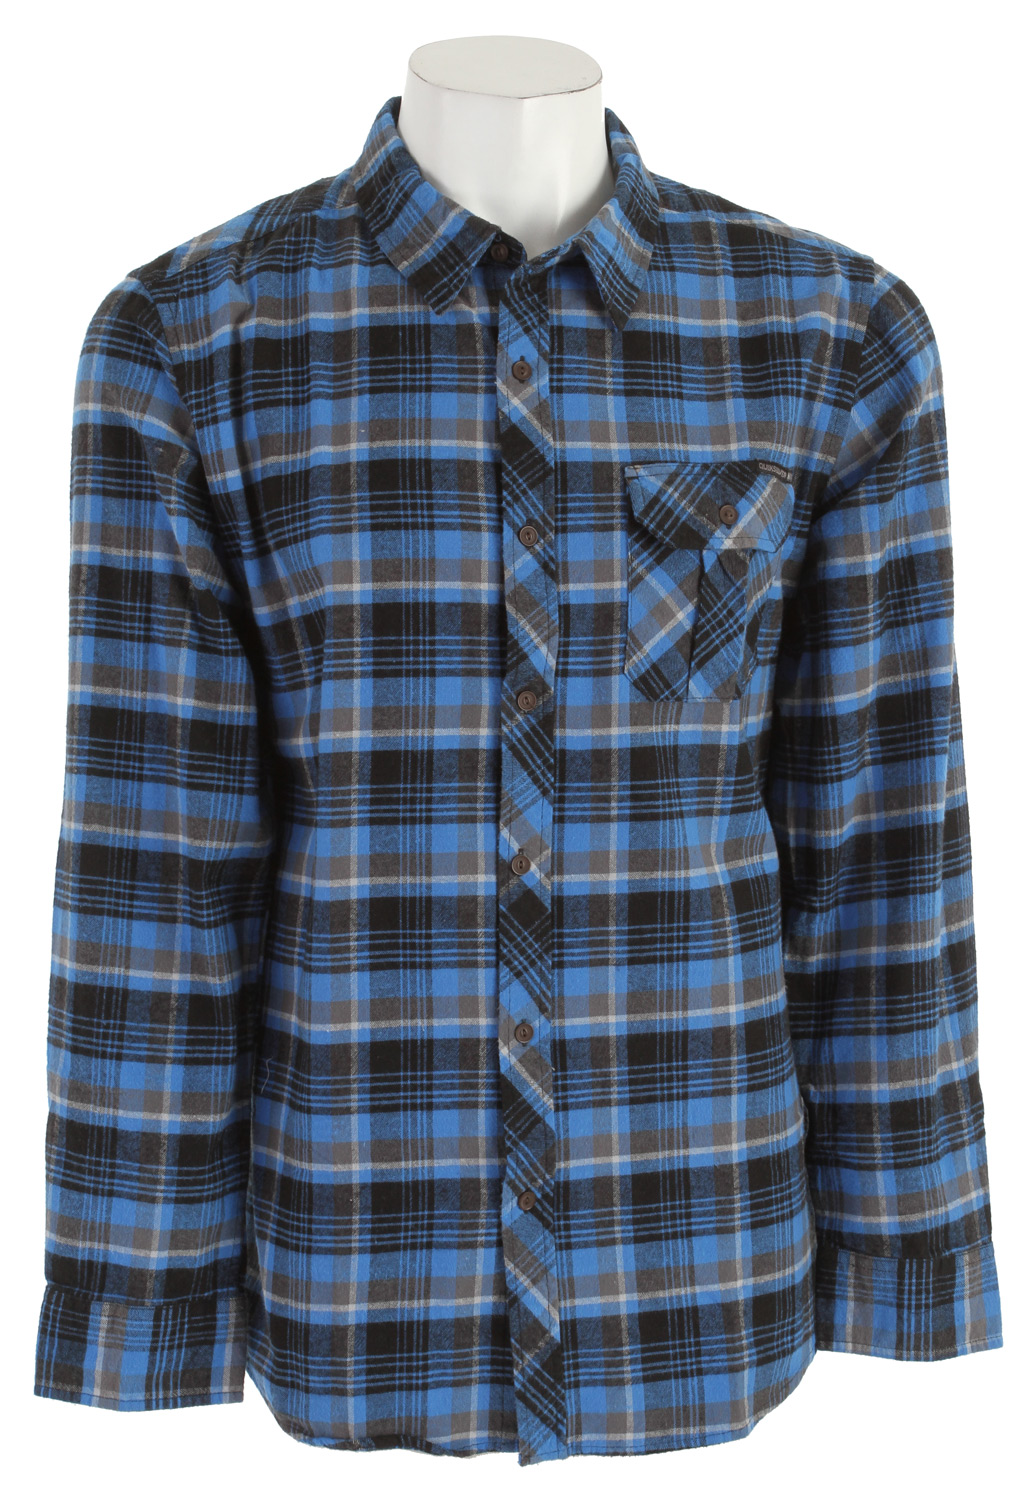 Surf Key Features of the Quiksilver Nicholas L/S Shirt: 100% cotton yard dye flannel plaid Exterior woven label and deluxe Fish eye buttons Interior collar piping and workwear details Garment wash with softener - $33.95